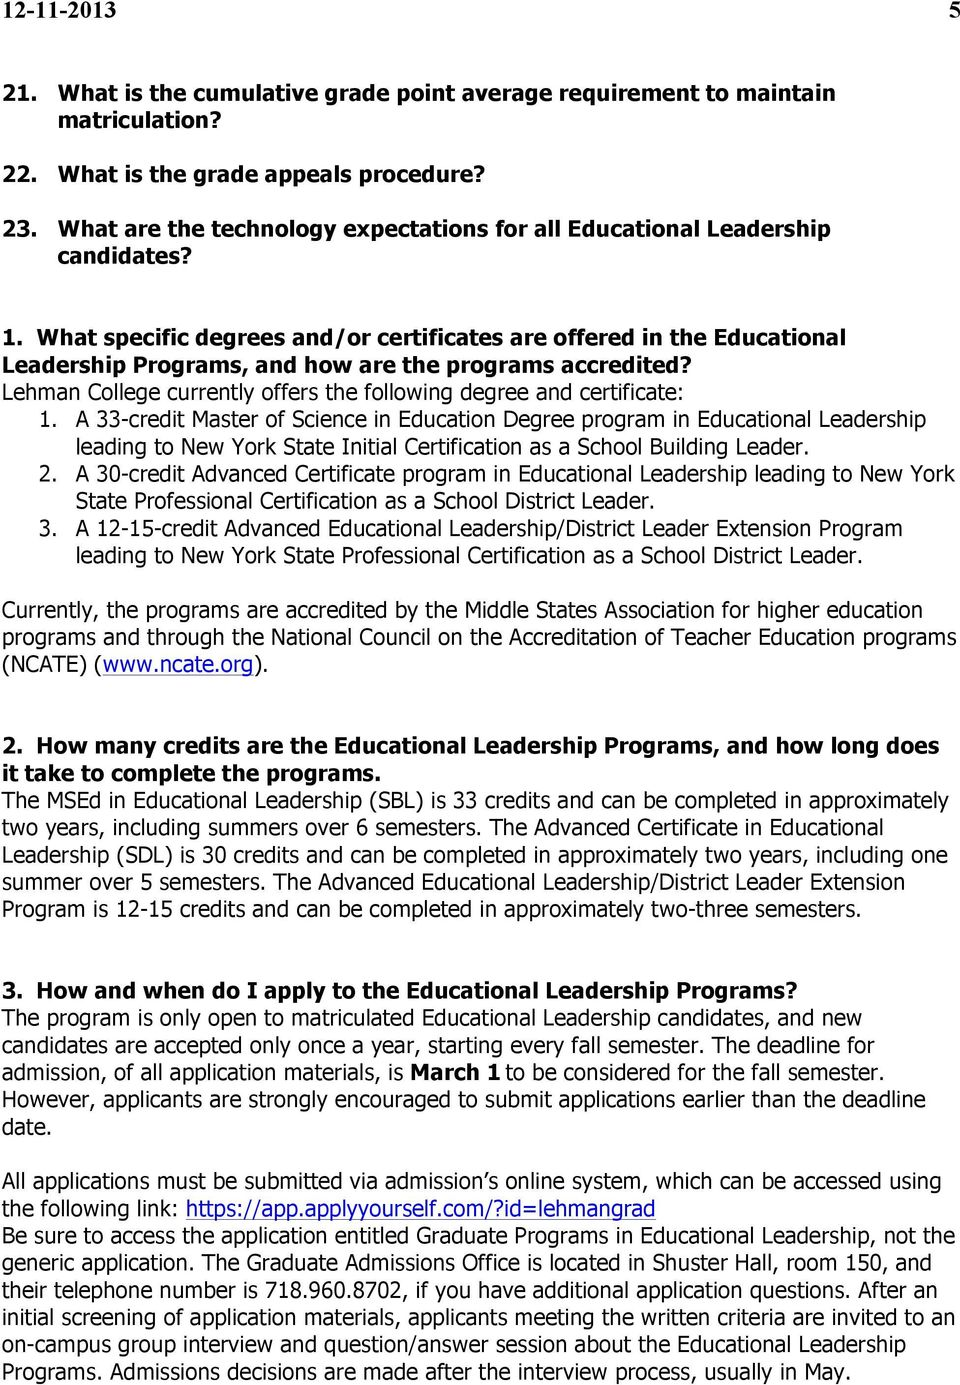 What specific degrees and/or certificates are offered in the Educational Leadership Programs, and how are the programs accredited?